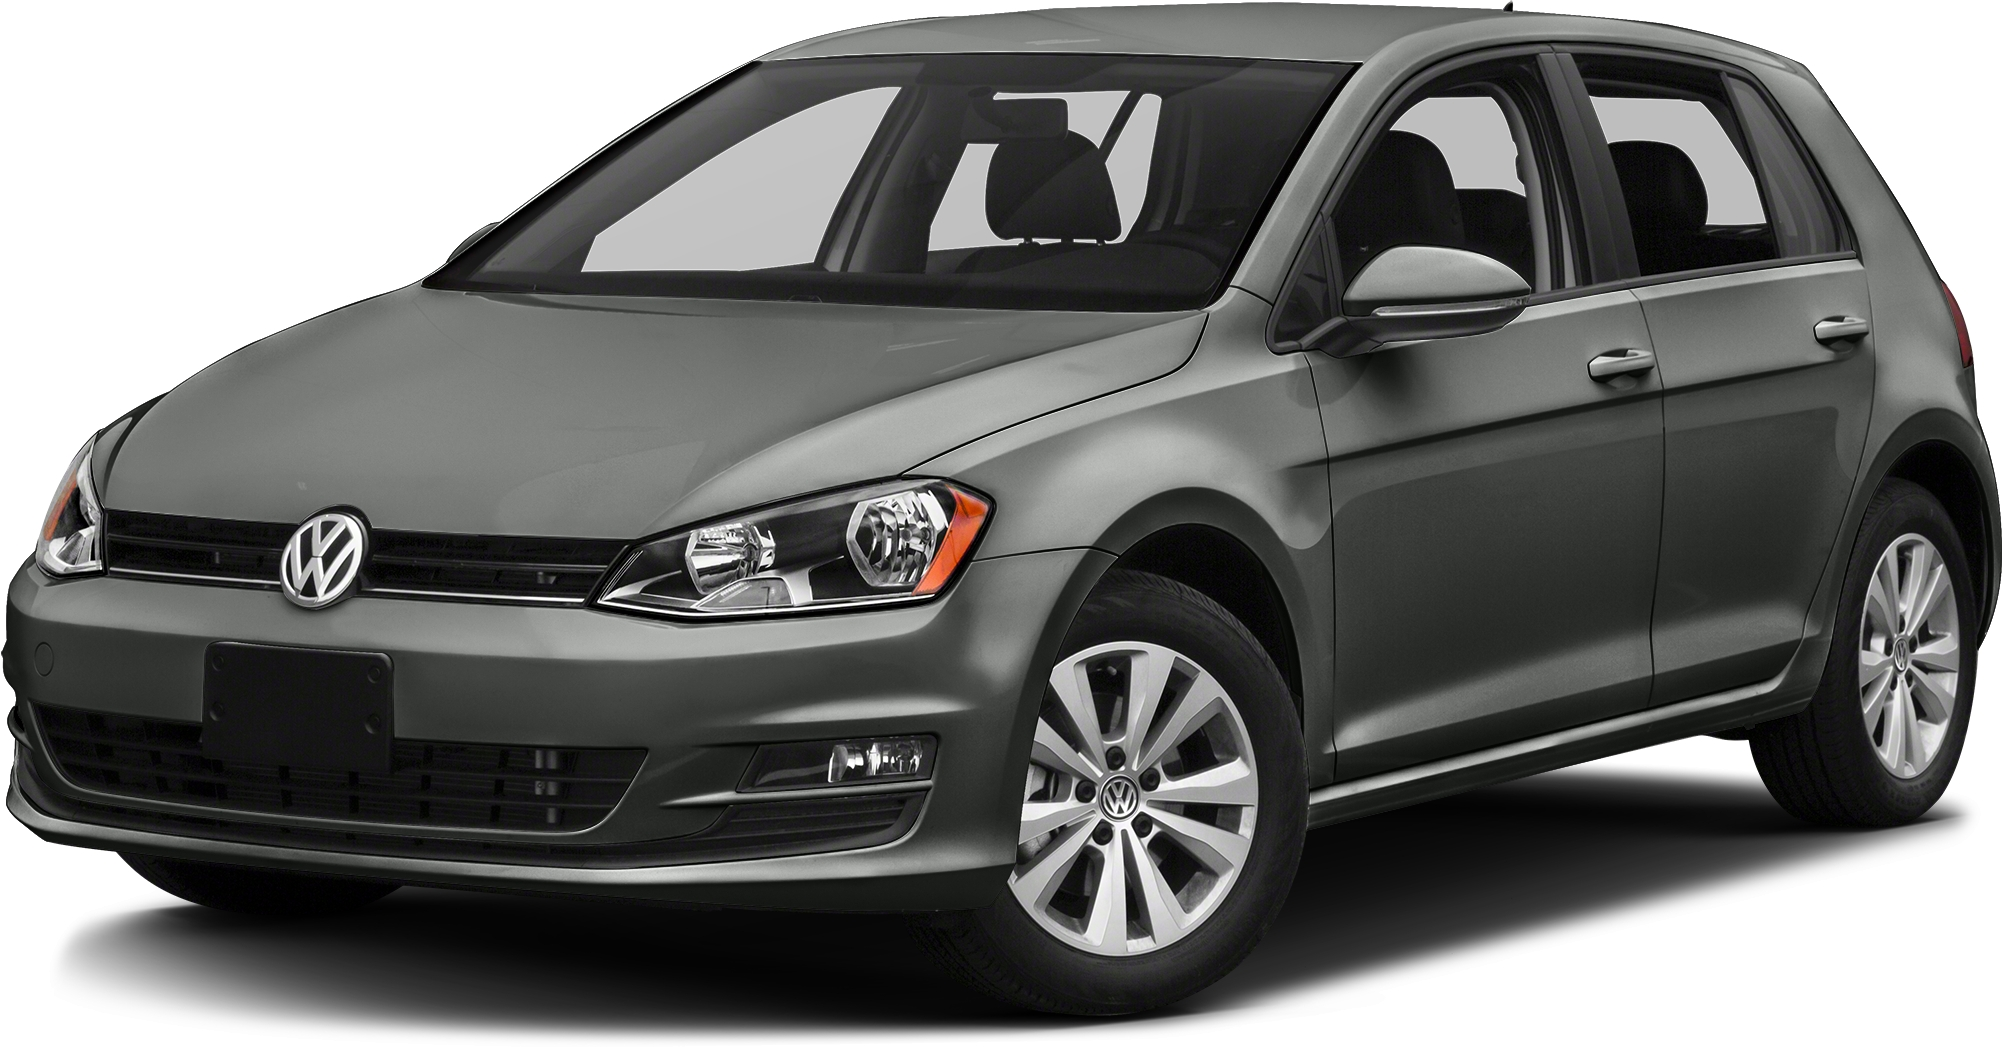 2017 volkswagen golf wolfsburg edition pompton plains nj. Black Bedroom Furniture Sets. Home Design Ideas